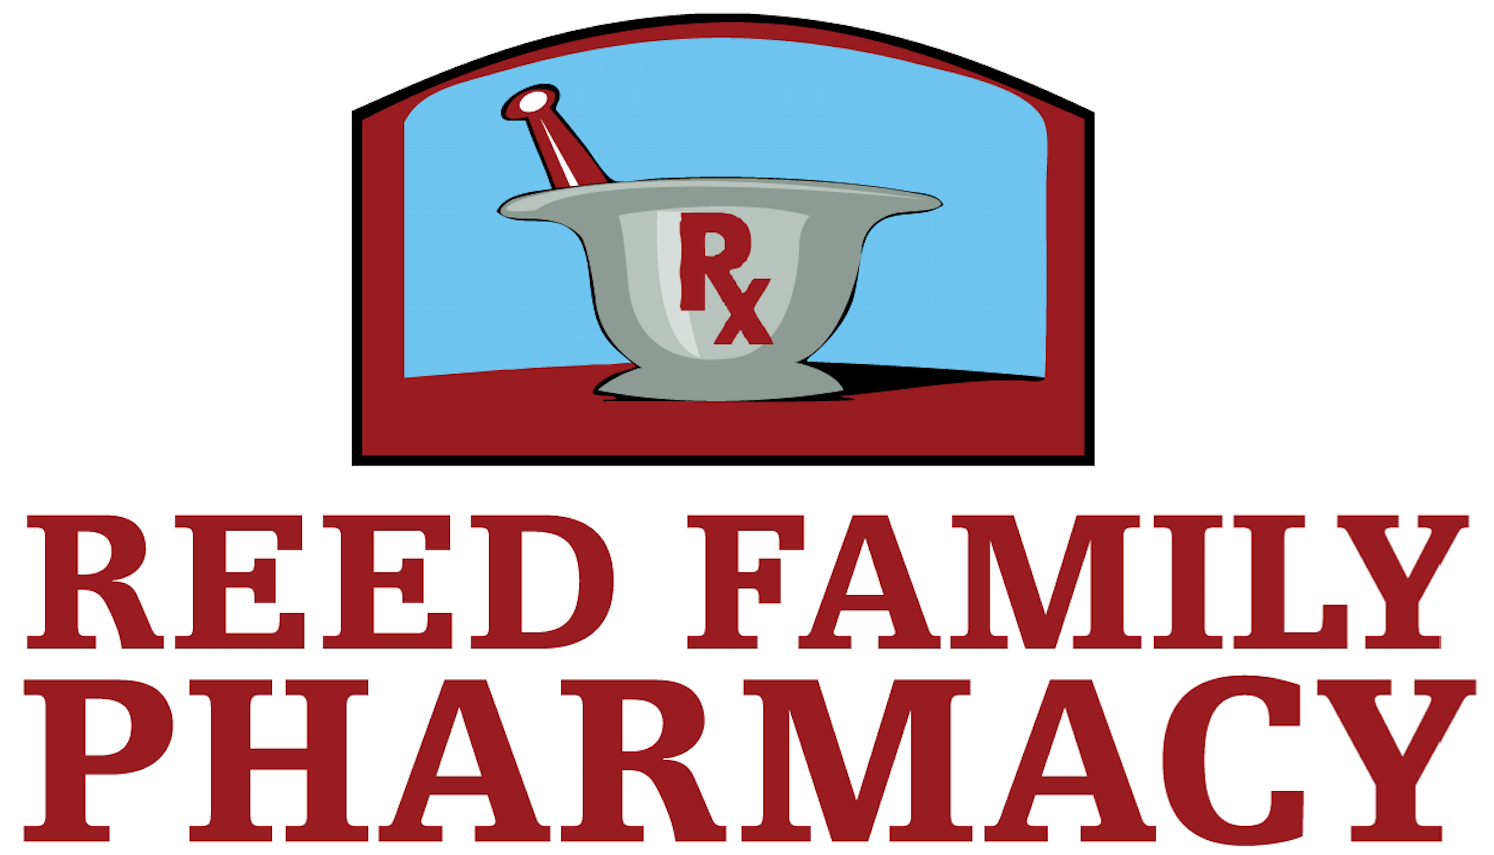 Reed Family Pharmacy